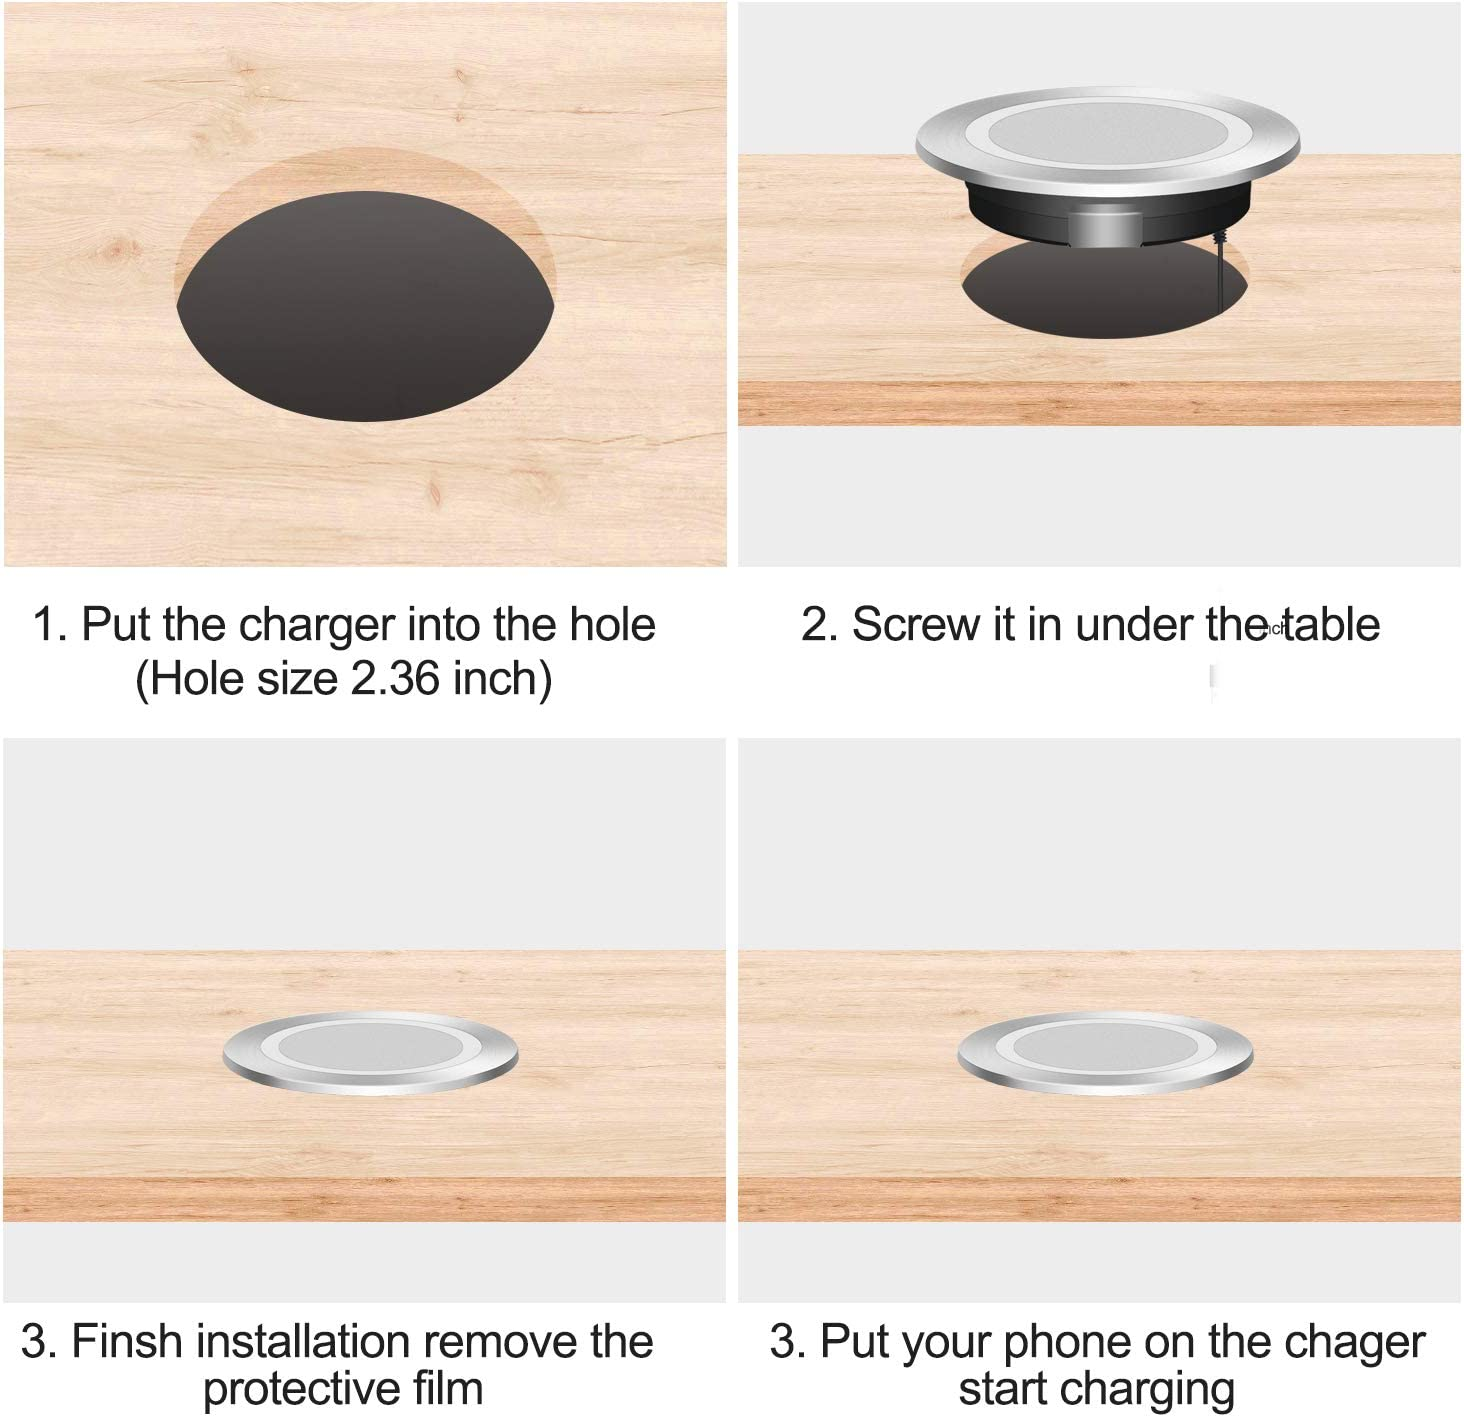 """Embedded on Desk EDL-18 Wireless Charger fit Standard-Sized Grommet Hole 2.36/"""" Fast Charging 10W//7.5W//5W Fast Charging for Qi Enabled Phones/& Devices. Silver Easy to Install"""